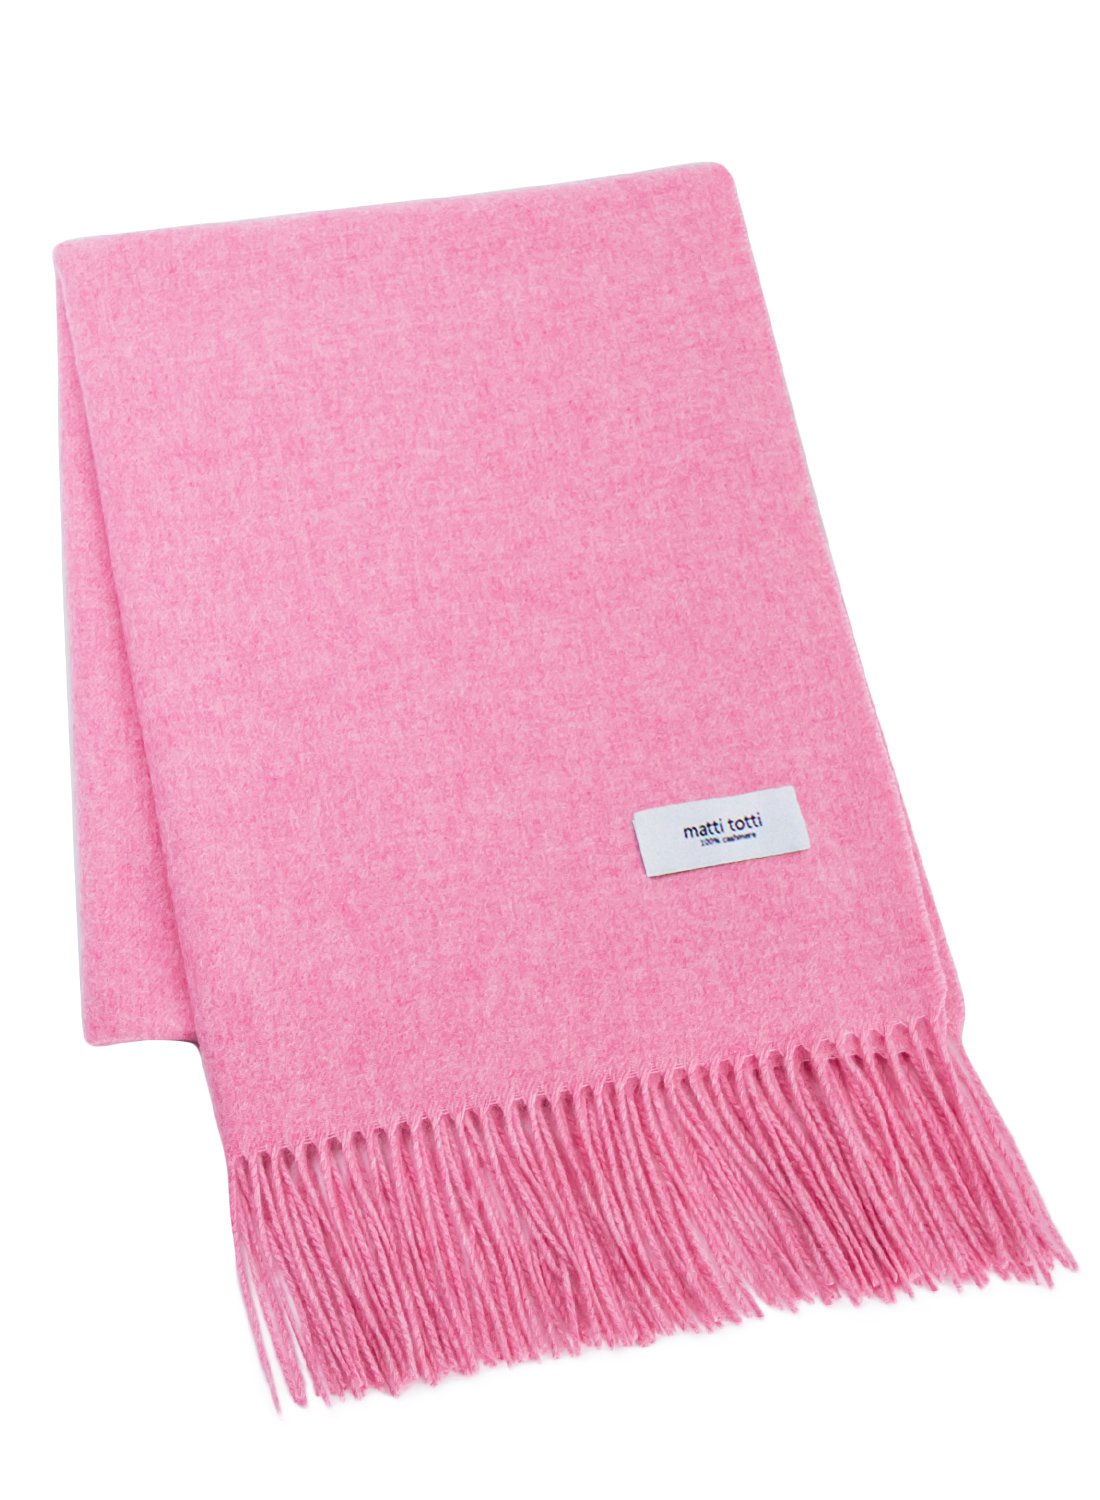 Pale Pink 100% Cashmere Shawl Stole Women Gift Scarves Wrap Blanket A1814B1-18